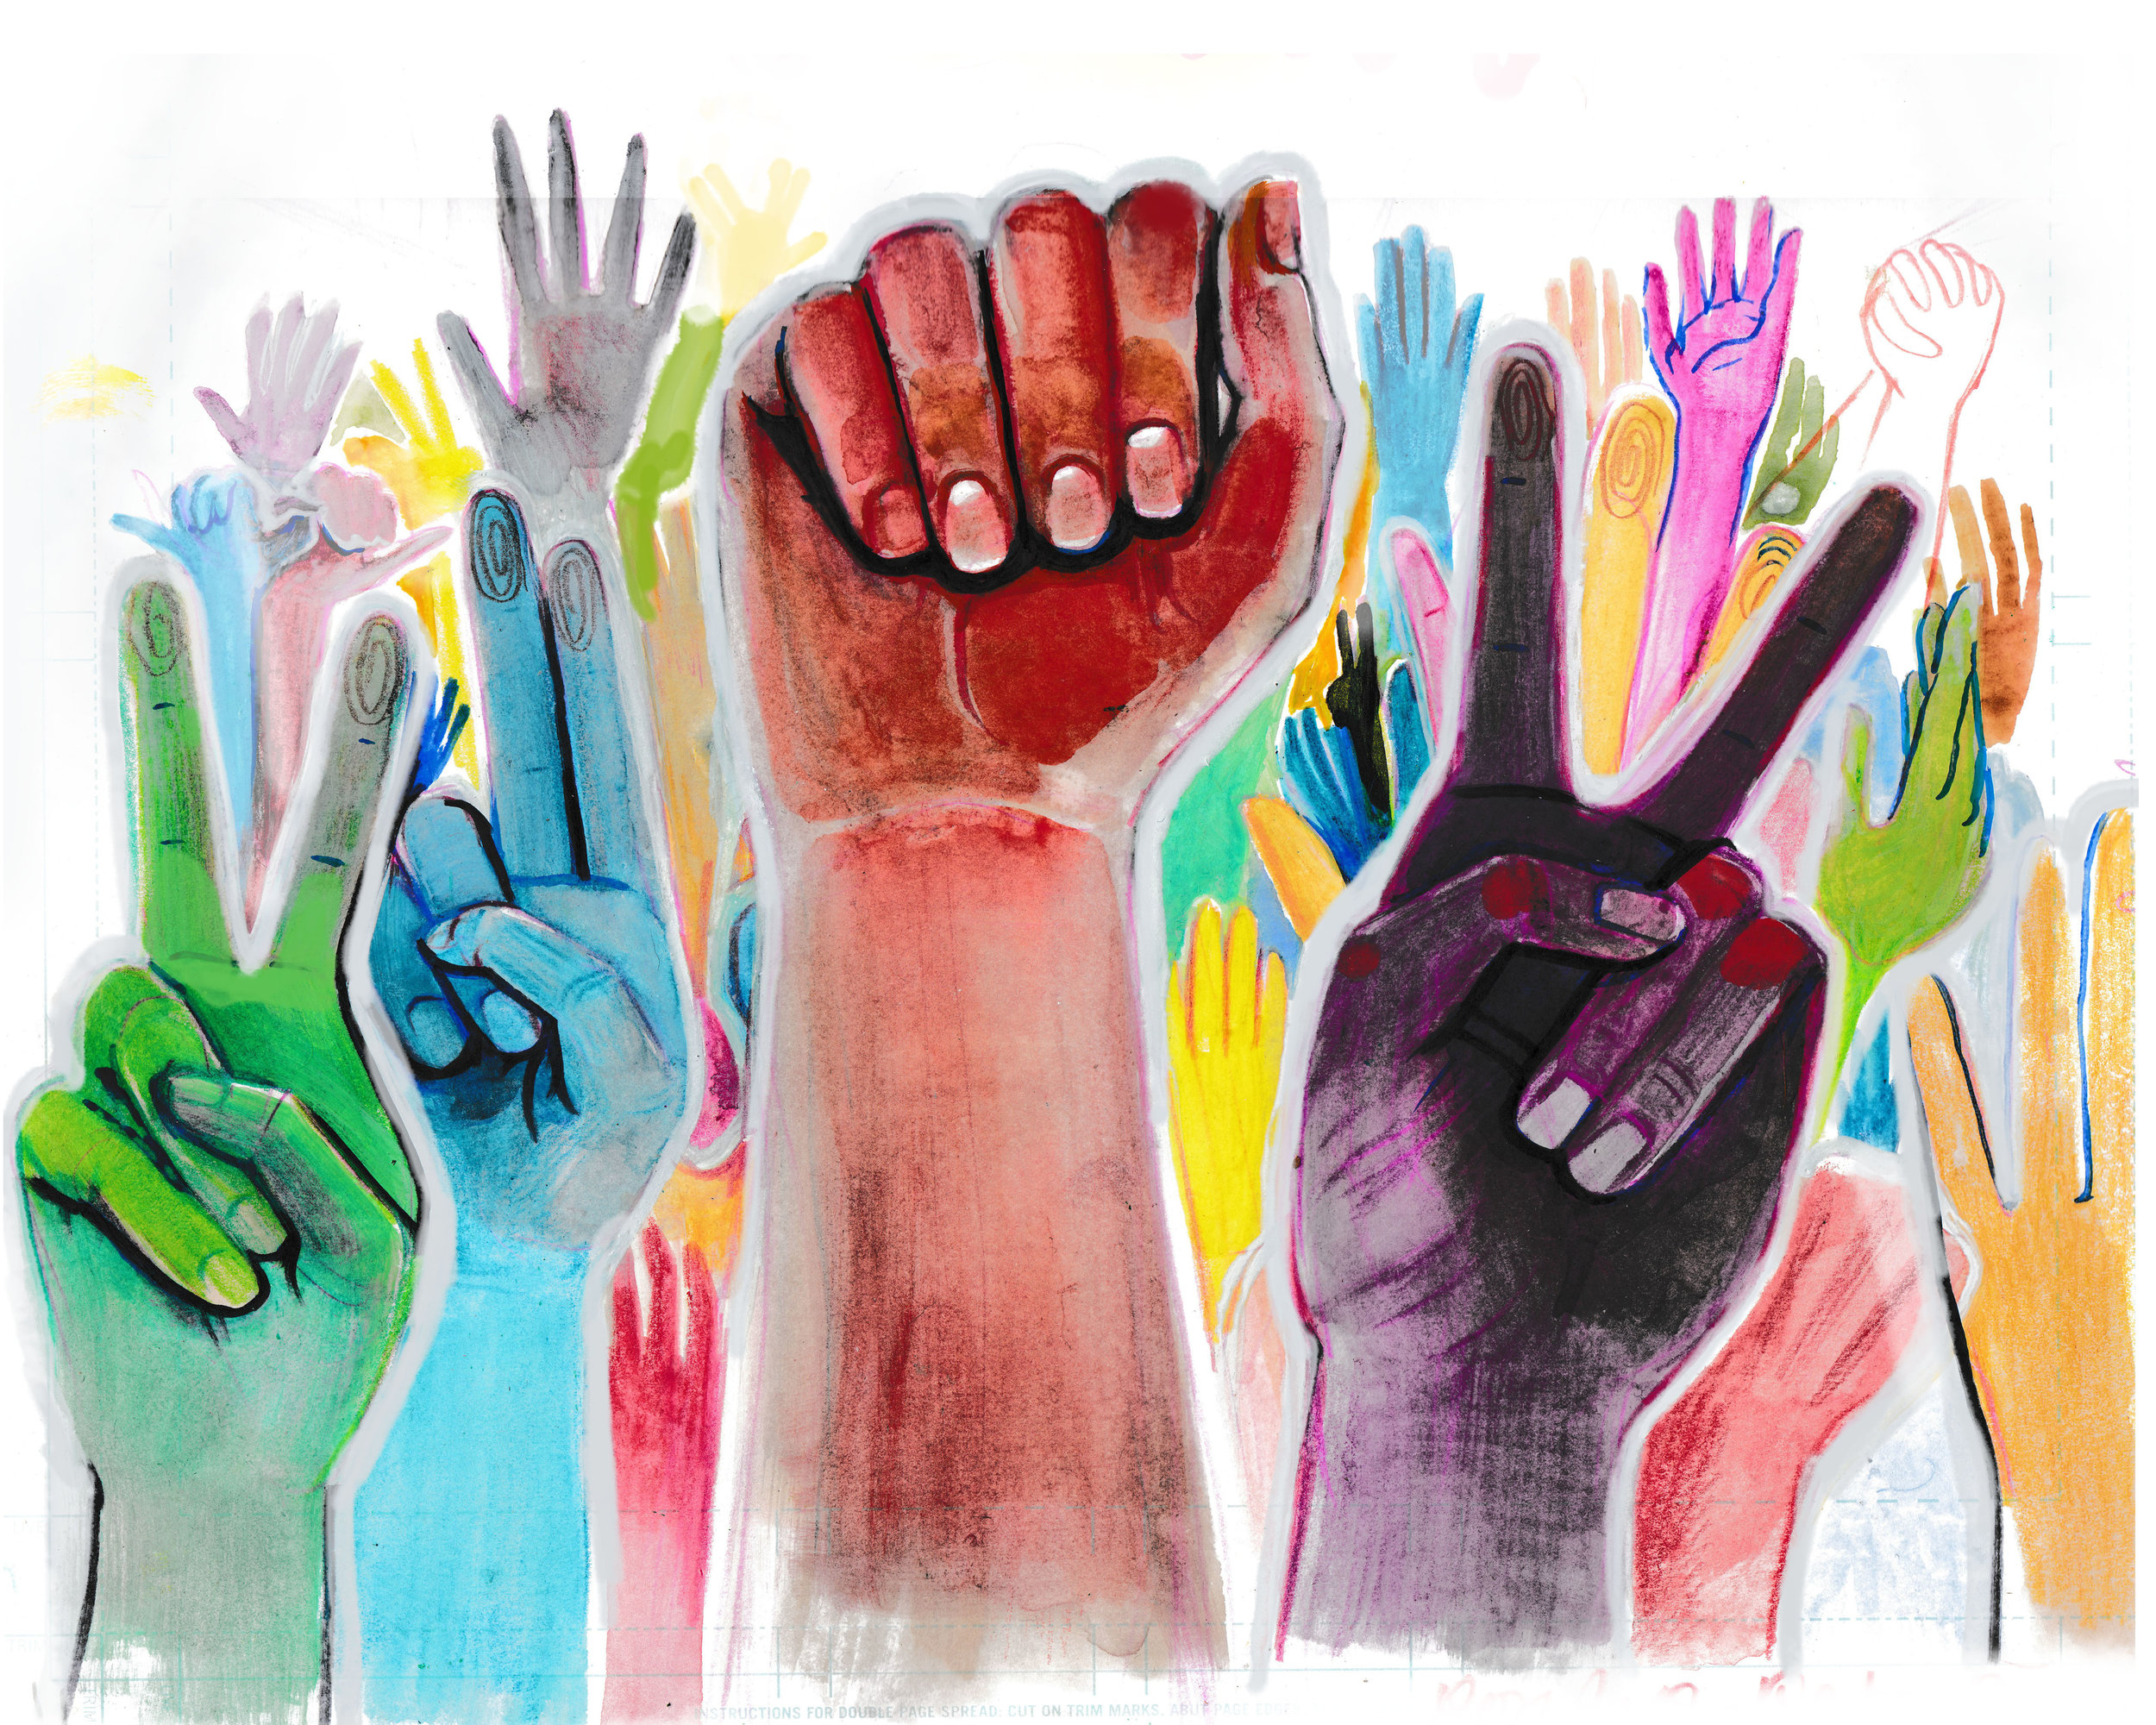 Hands held high together, we are a movement!